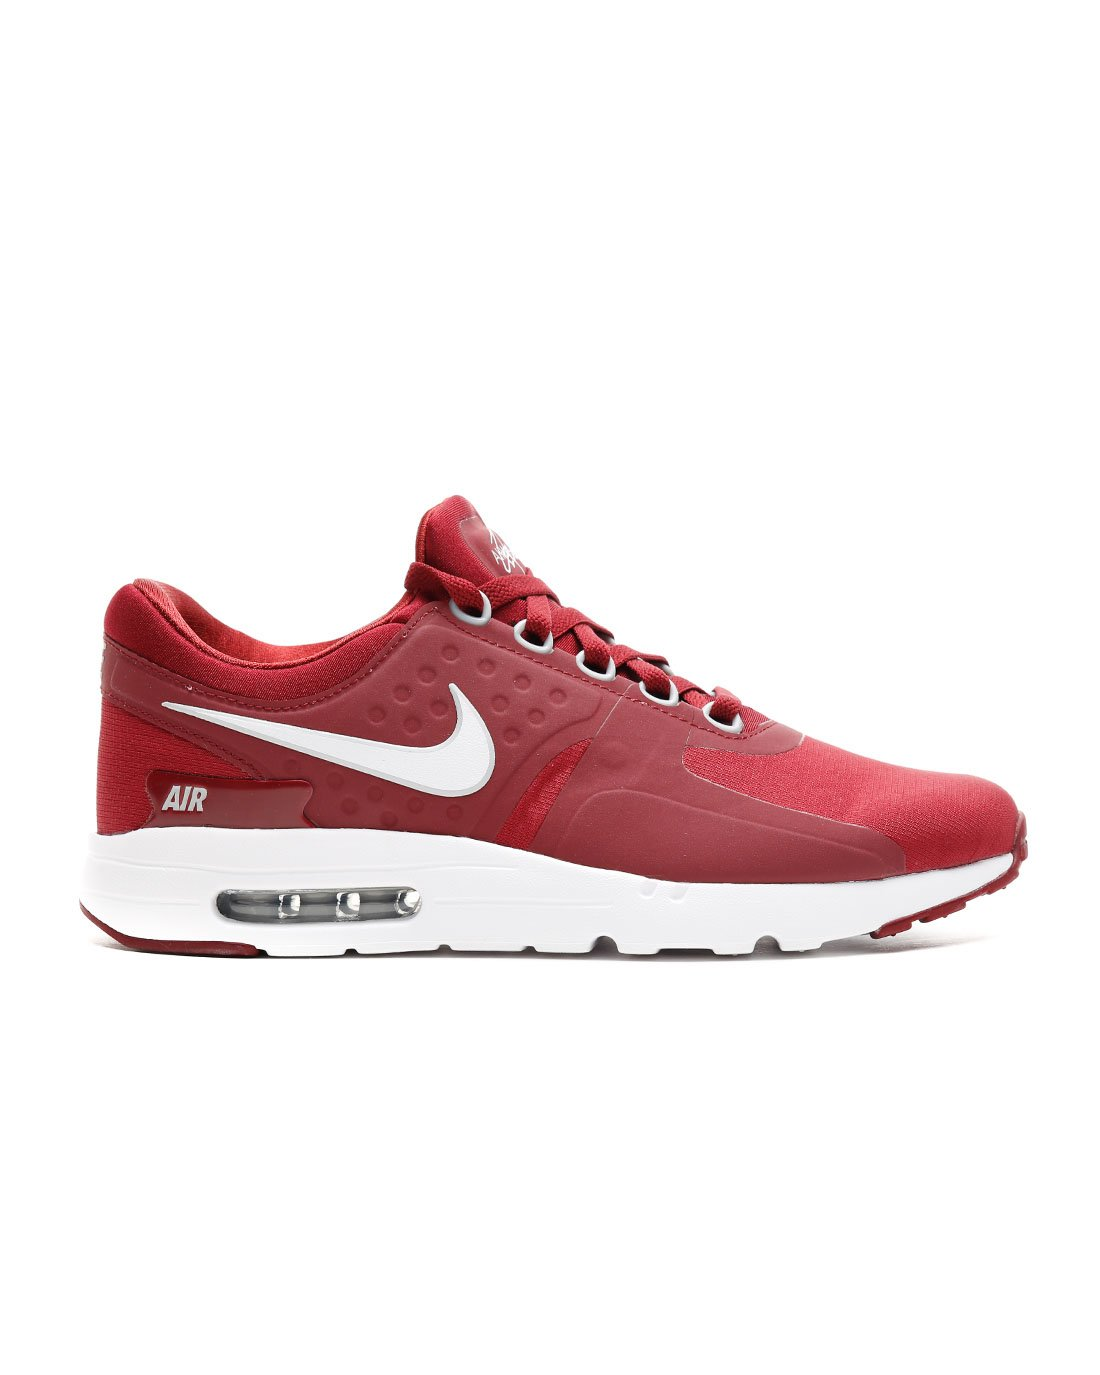 NIKE Air Max Zero Essential Mens Running Shoes B0761SVVC1 12 D(M) US|Team Red White Wolf Grey 602